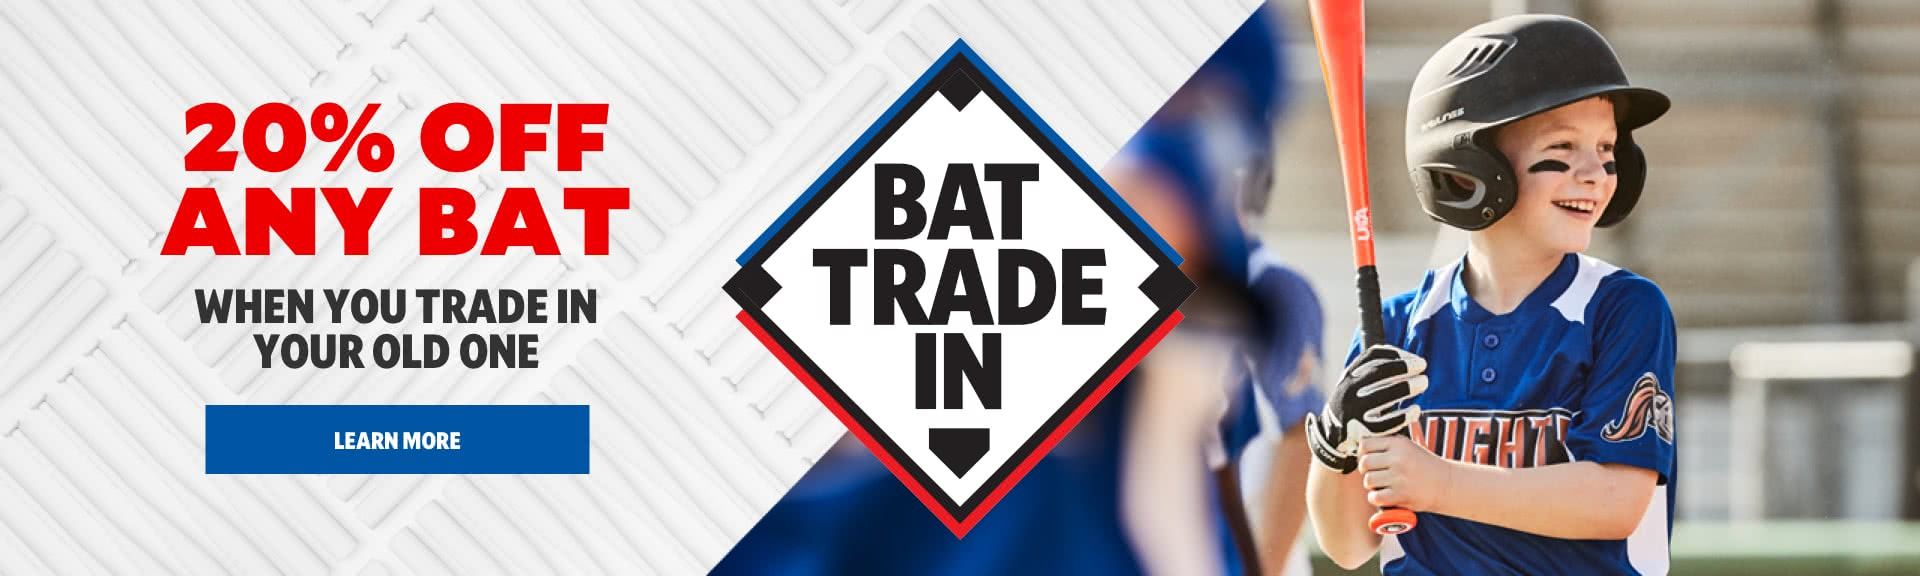 20% Off Any Bat When You Trade In Your Old One. Learn More